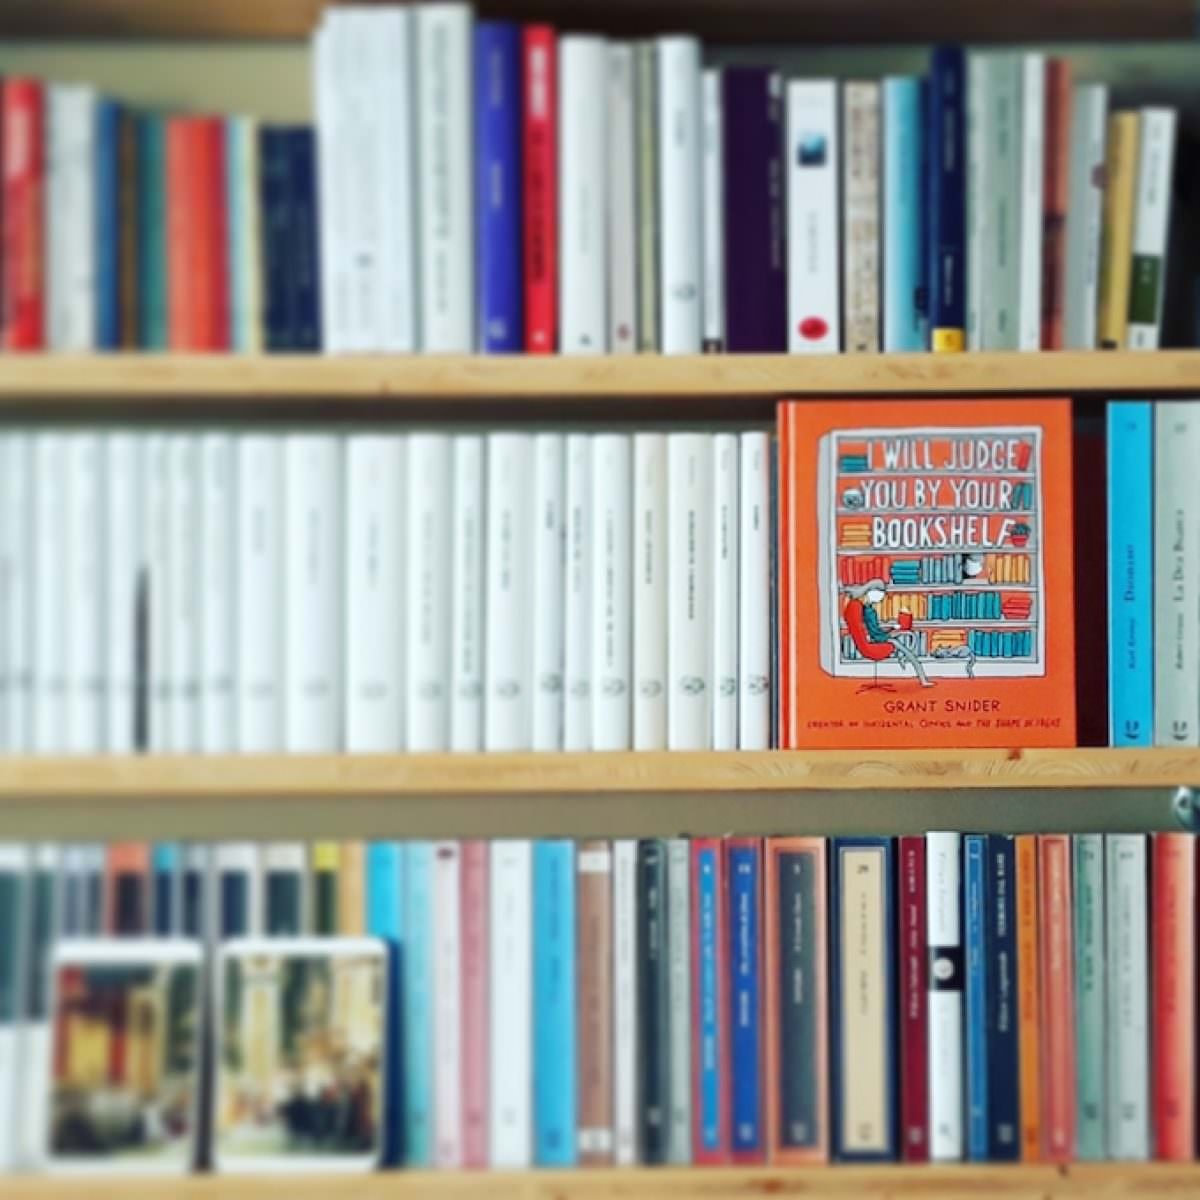 Grant Snider, I will judge you by your bookshelf